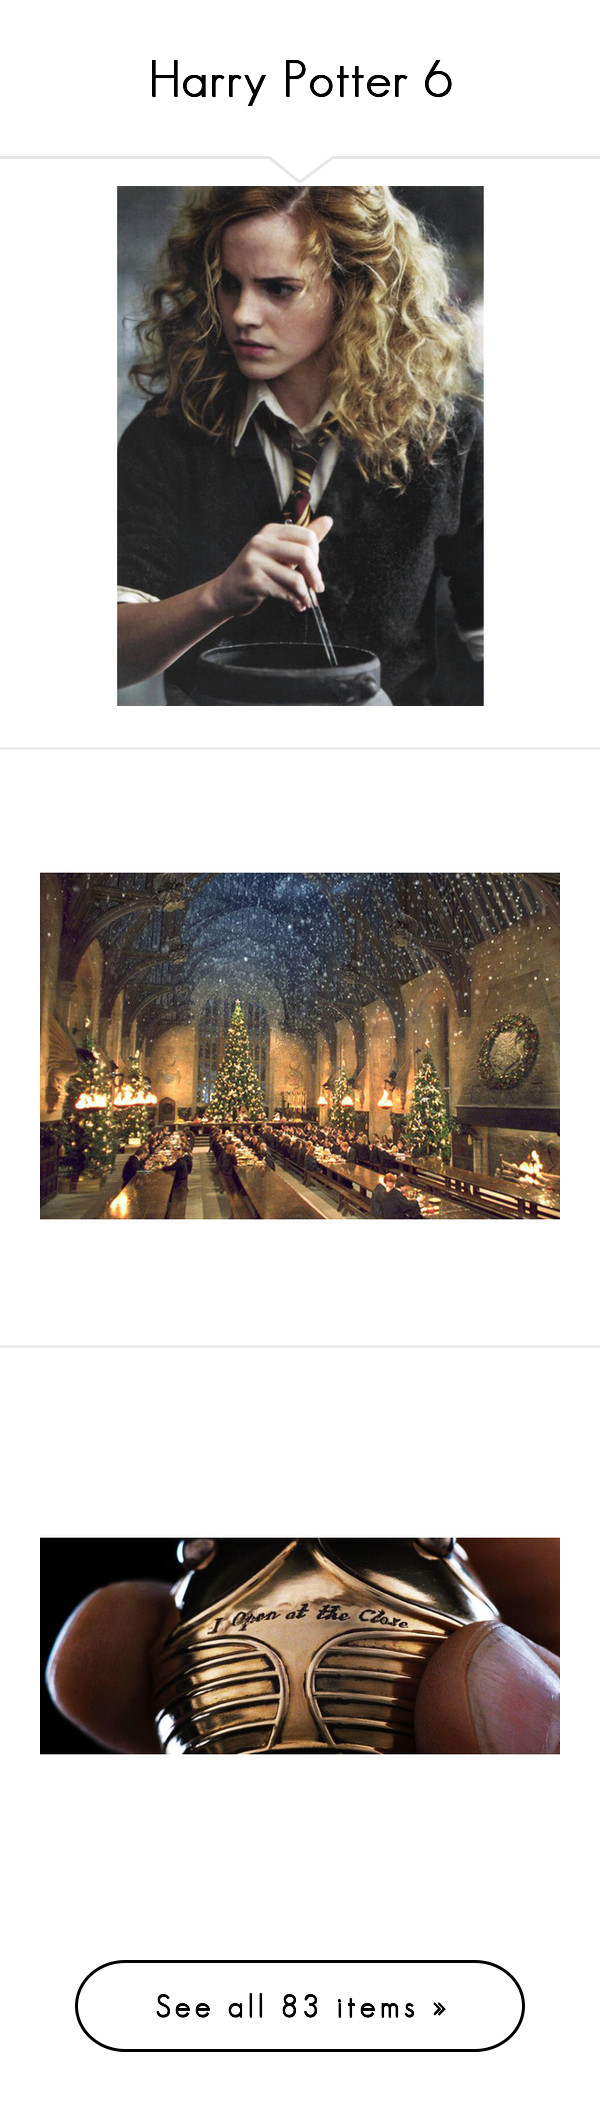 """Harry Potter 6"" by charmedgreys ❤ liked on Polyvore featuring harry potter, emma watson, backgrounds, hogwarts, pictures, brown, other, brown pictures, gryffindor and people"